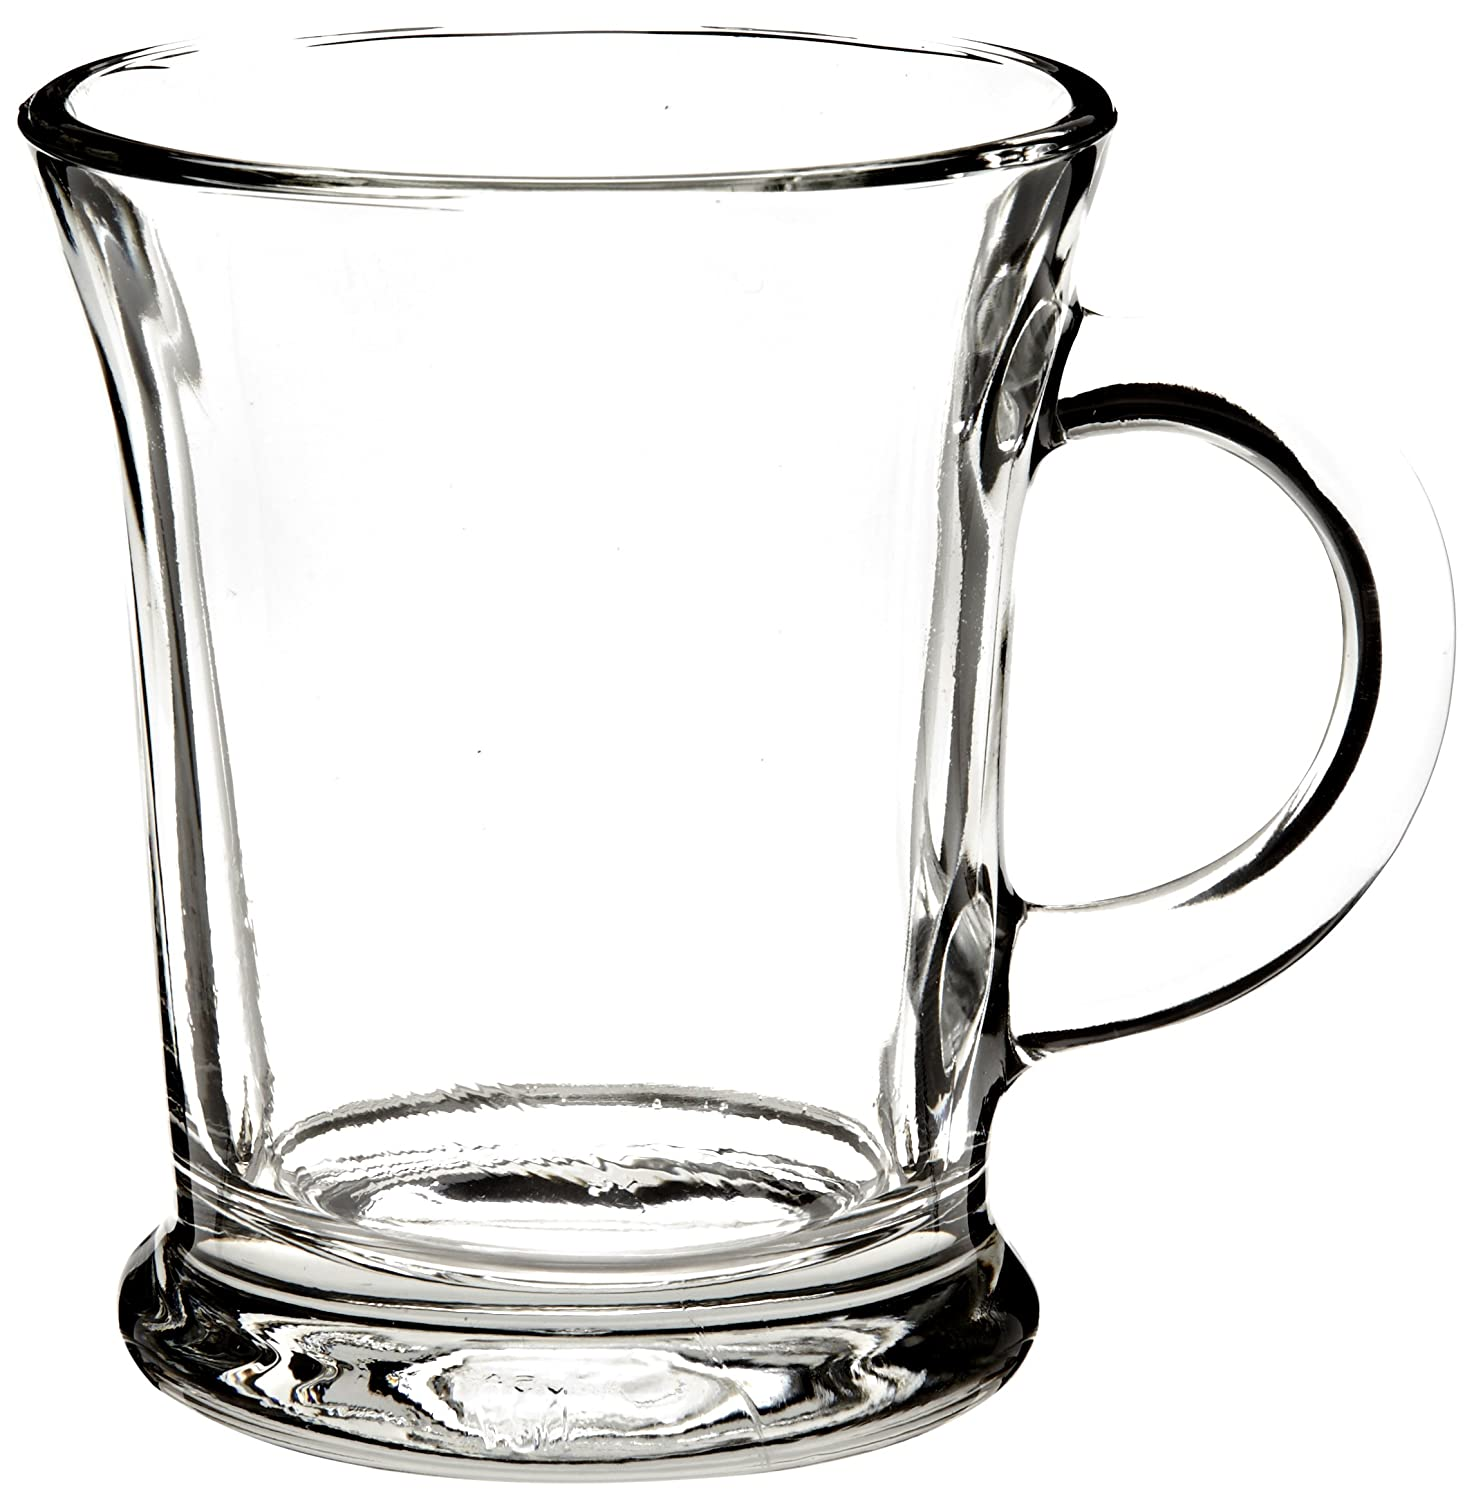 Classic Sturdy & Durable Clear Glass Beverage Mug Set with Handles for Coffee, Tea, Hot & Cold Drinks - Dishwasher Safe -14-Ounce Mocha Mug - 6 Pack